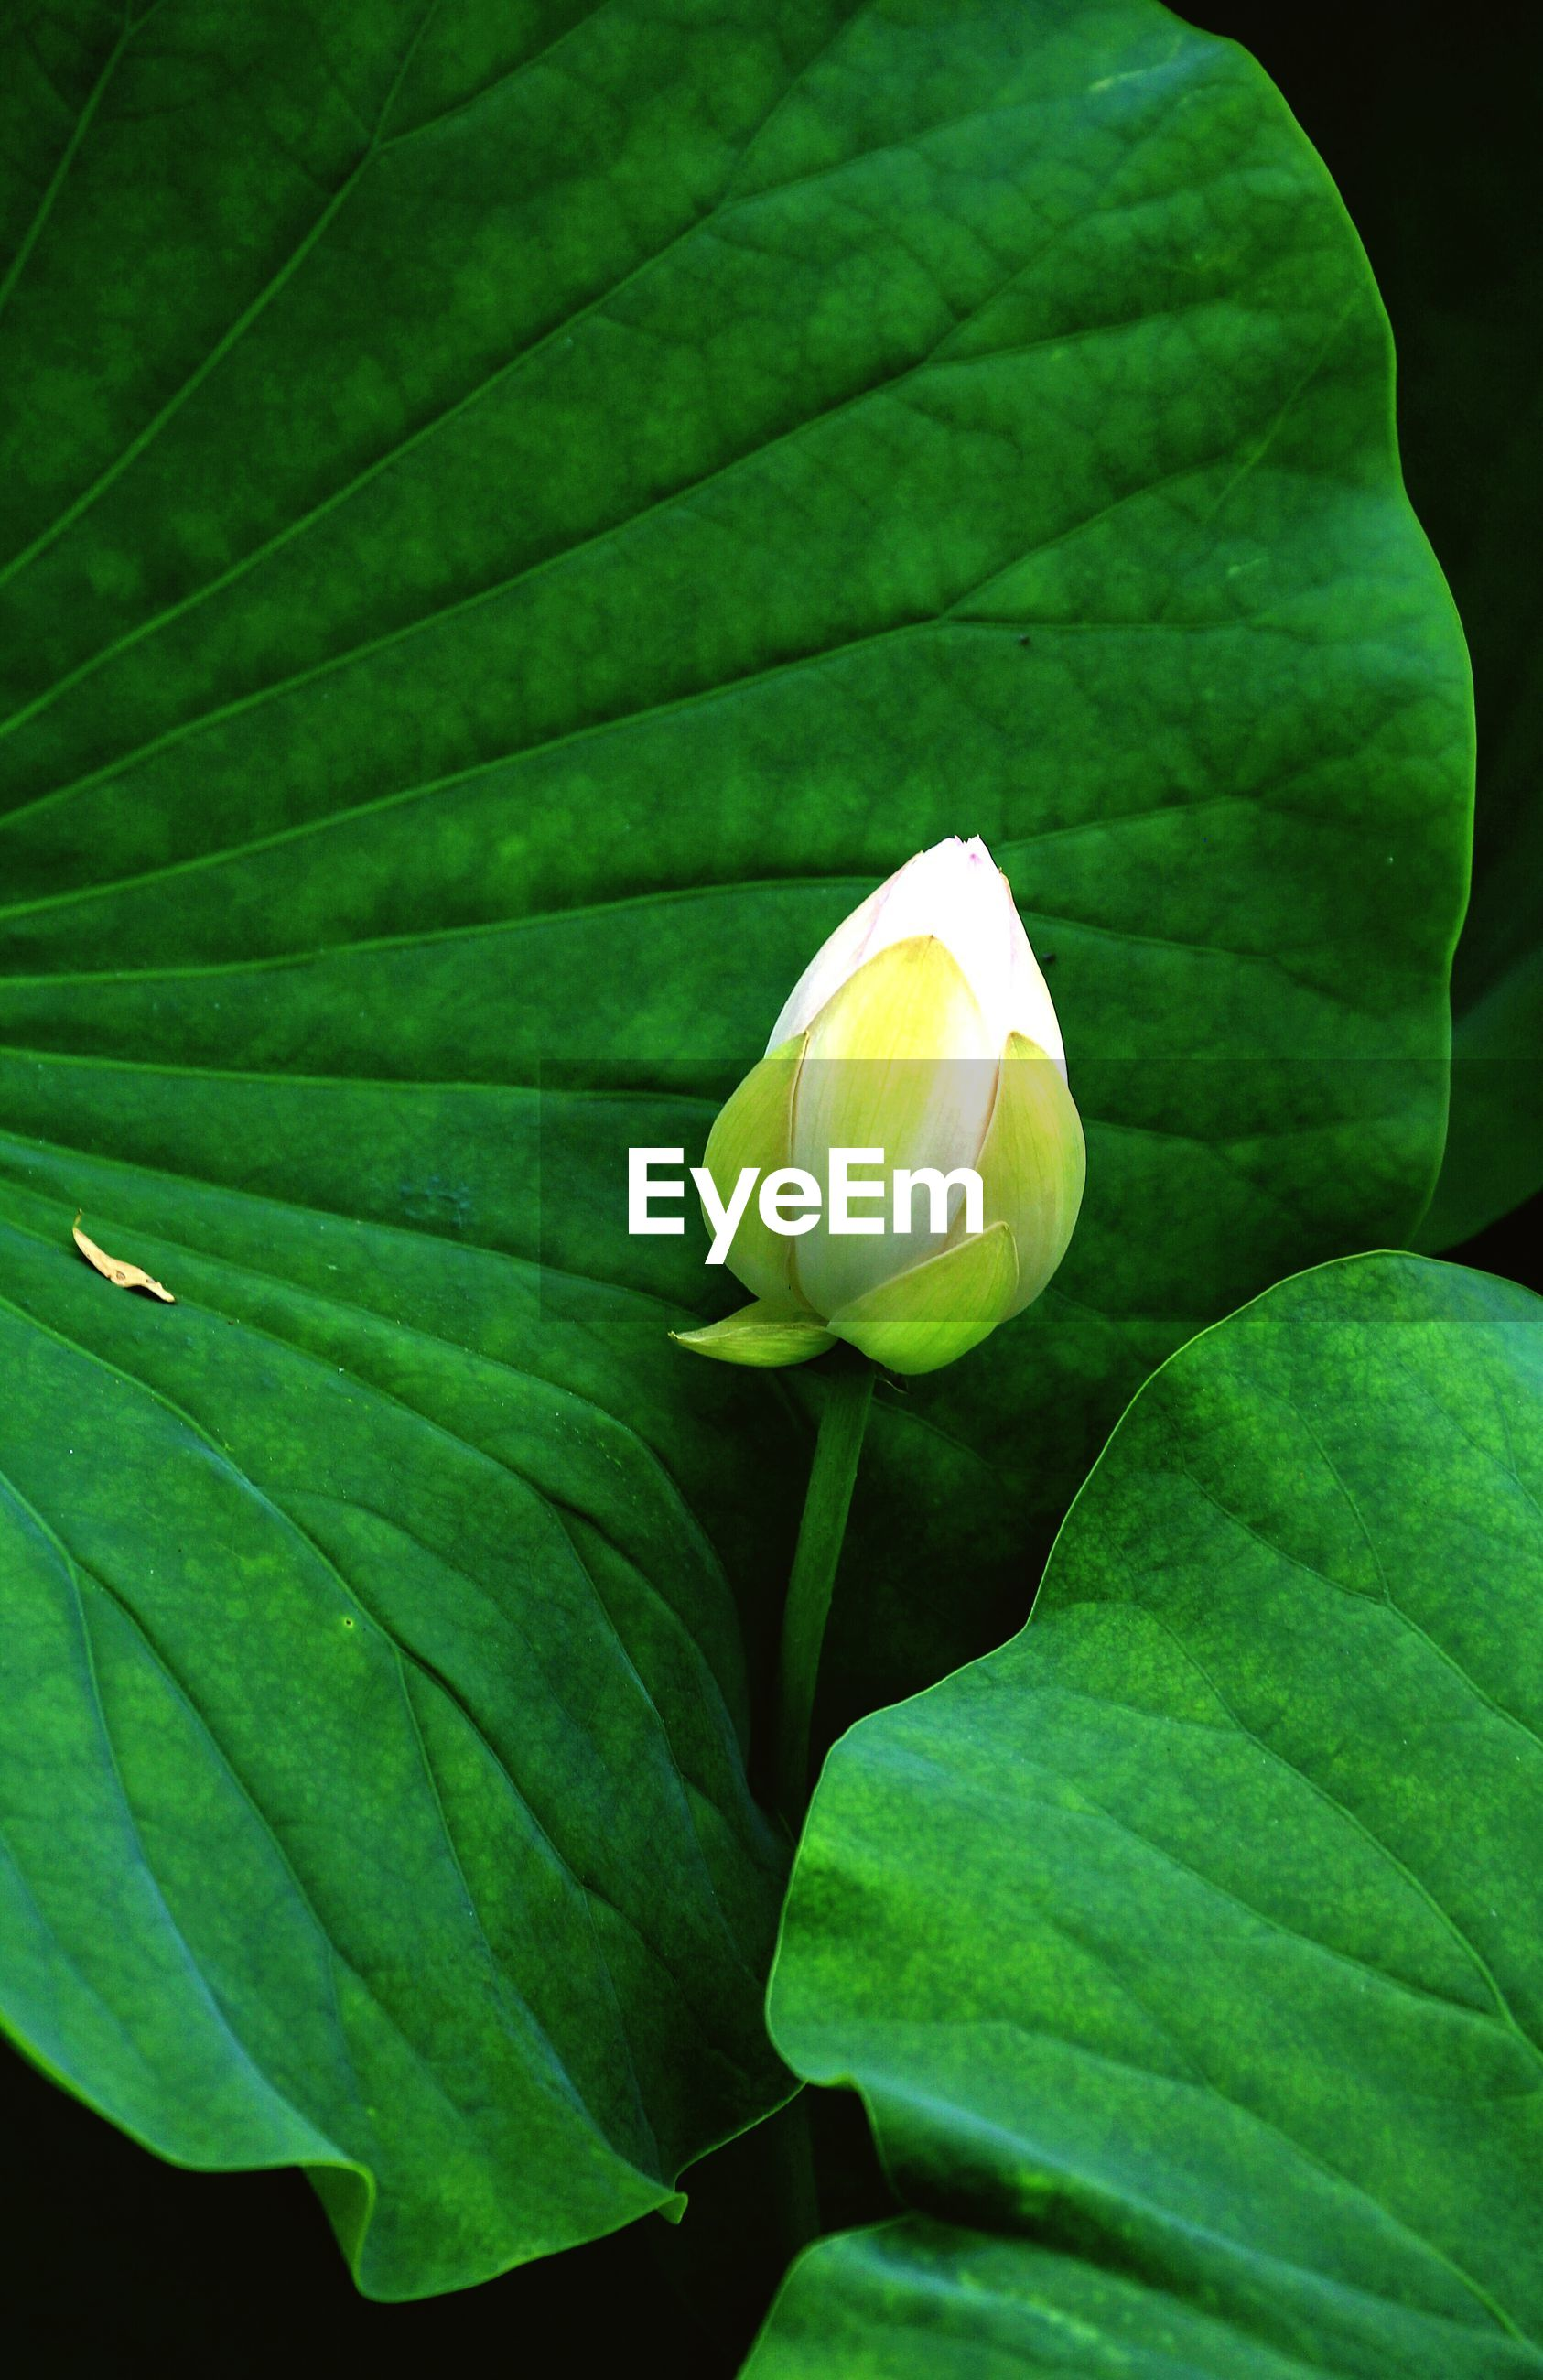 leaf, green color, freshness, growth, close-up, leaf vein, beauty in nature, nature, fragility, plant, yellow, green, flower, natural pattern, single flower, high angle view, no people, day, outdoors, bud